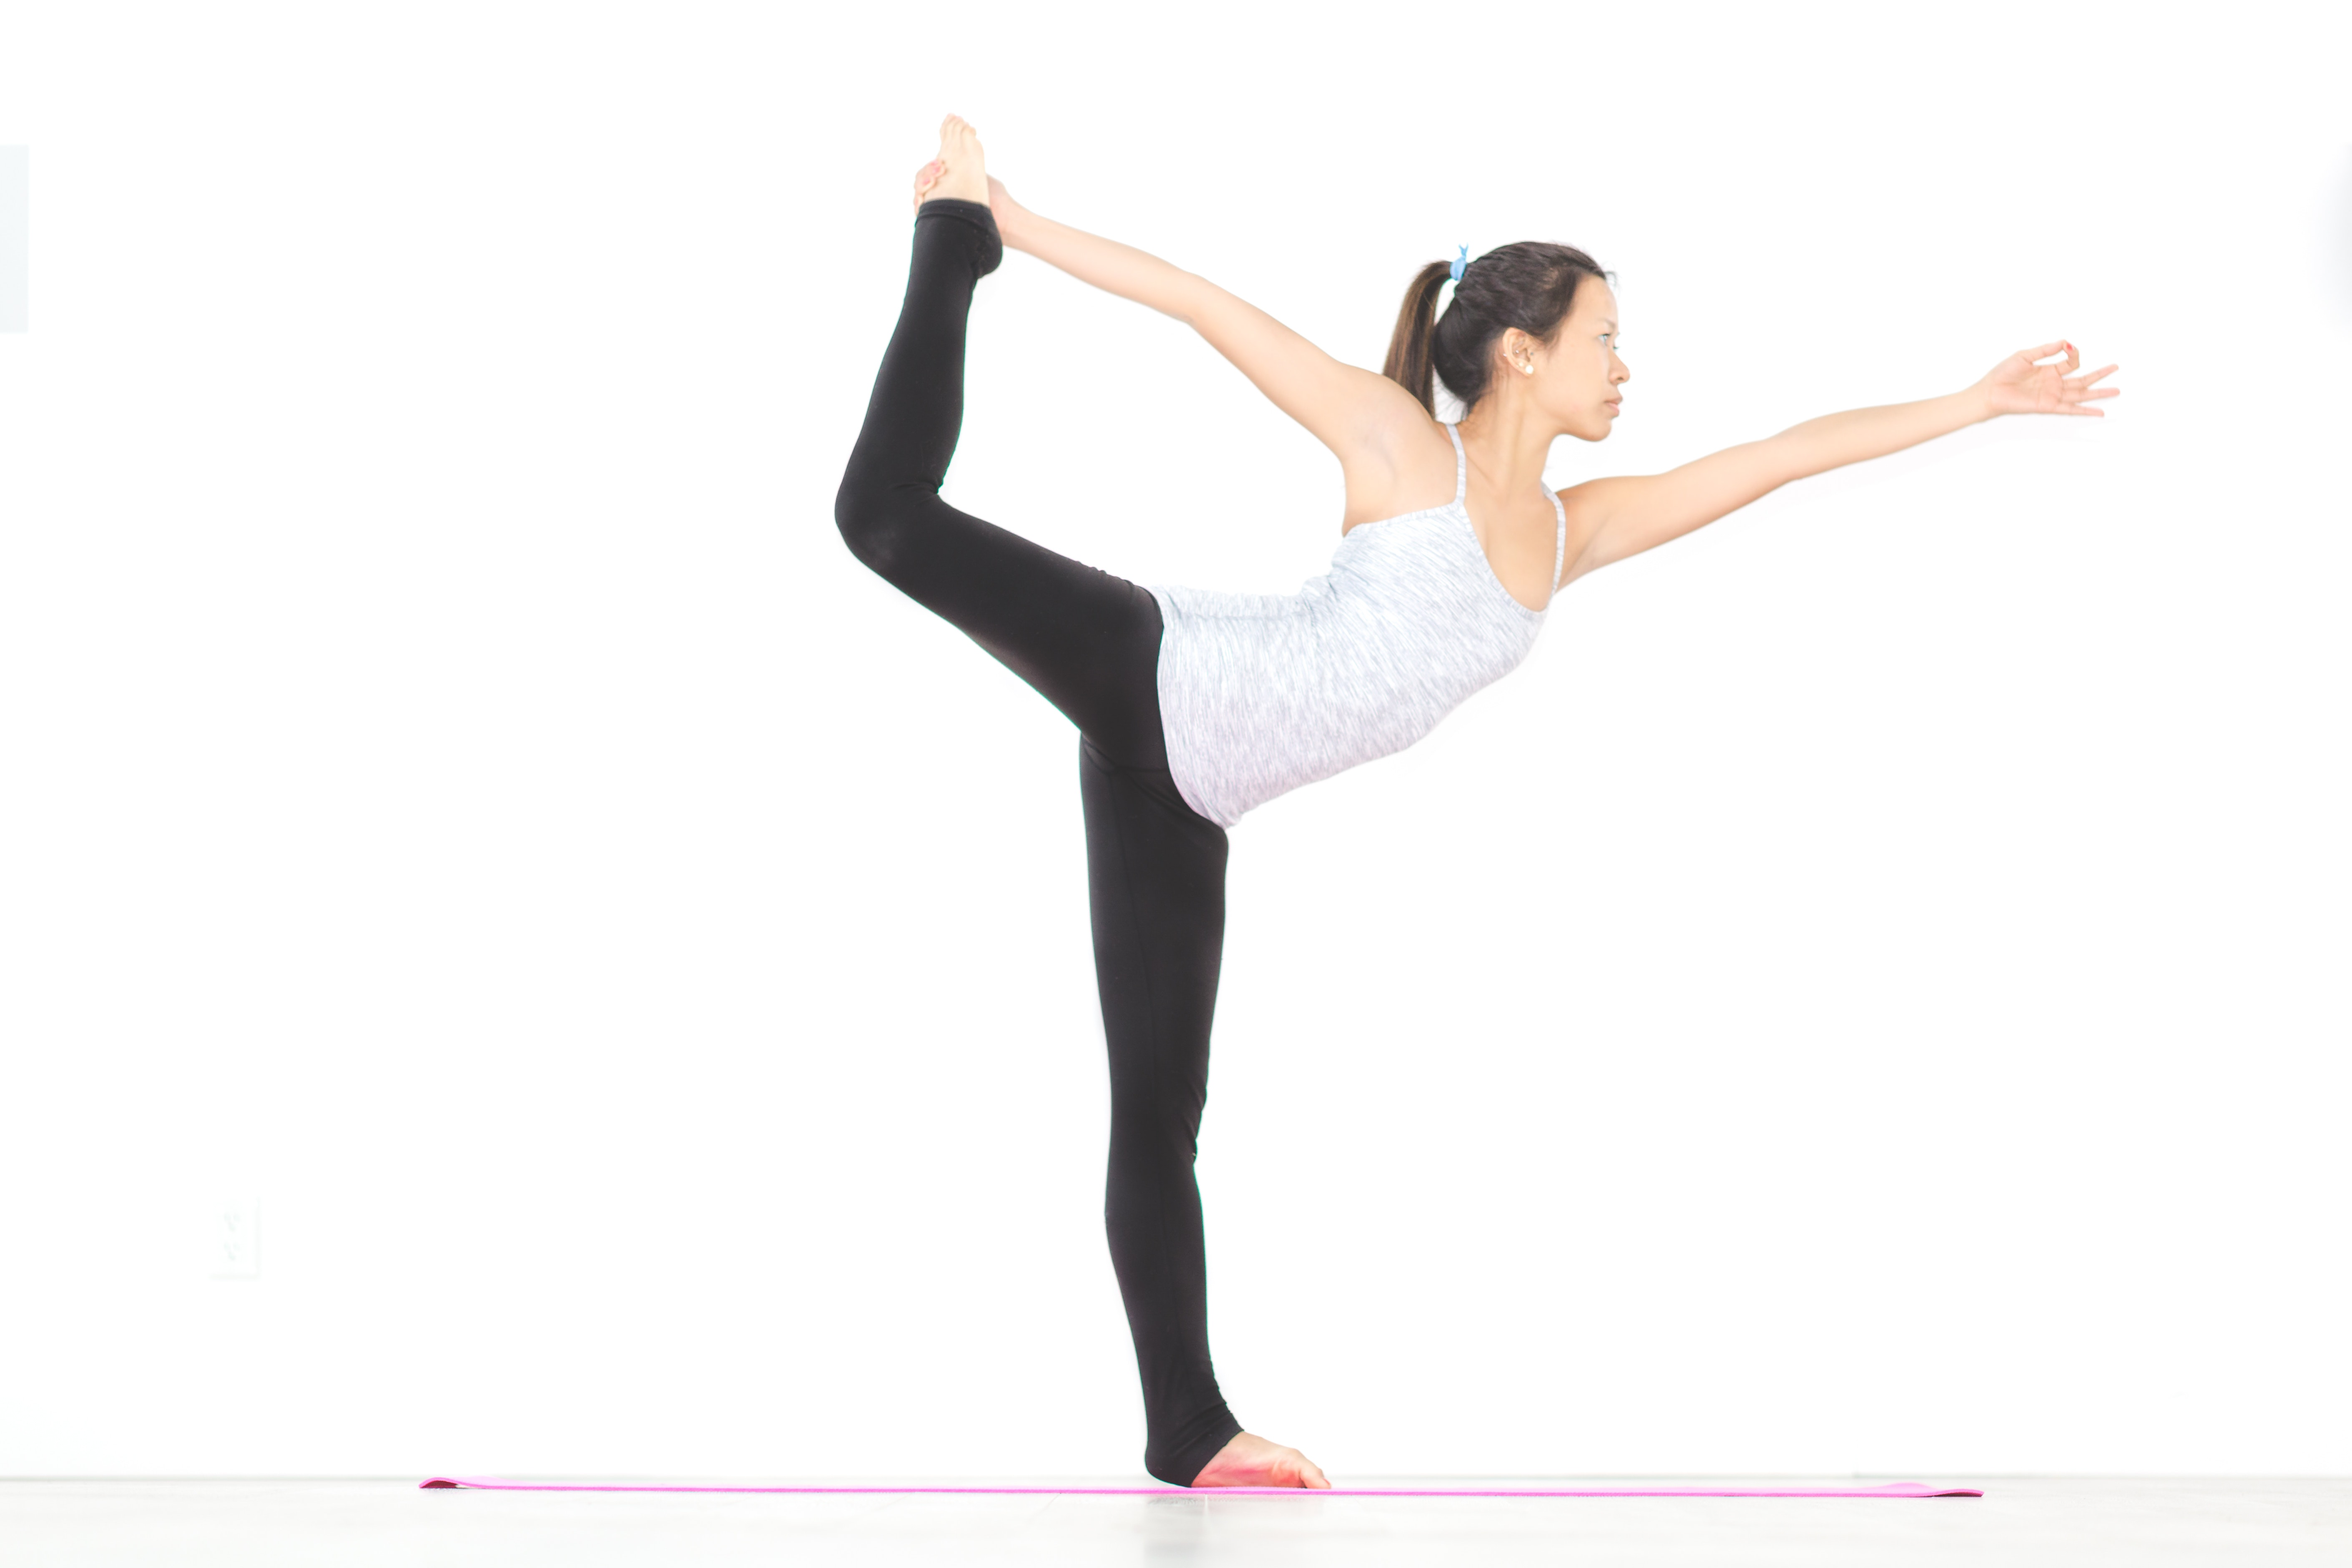 The Top 3 Things You Need to Know to Start Yoga